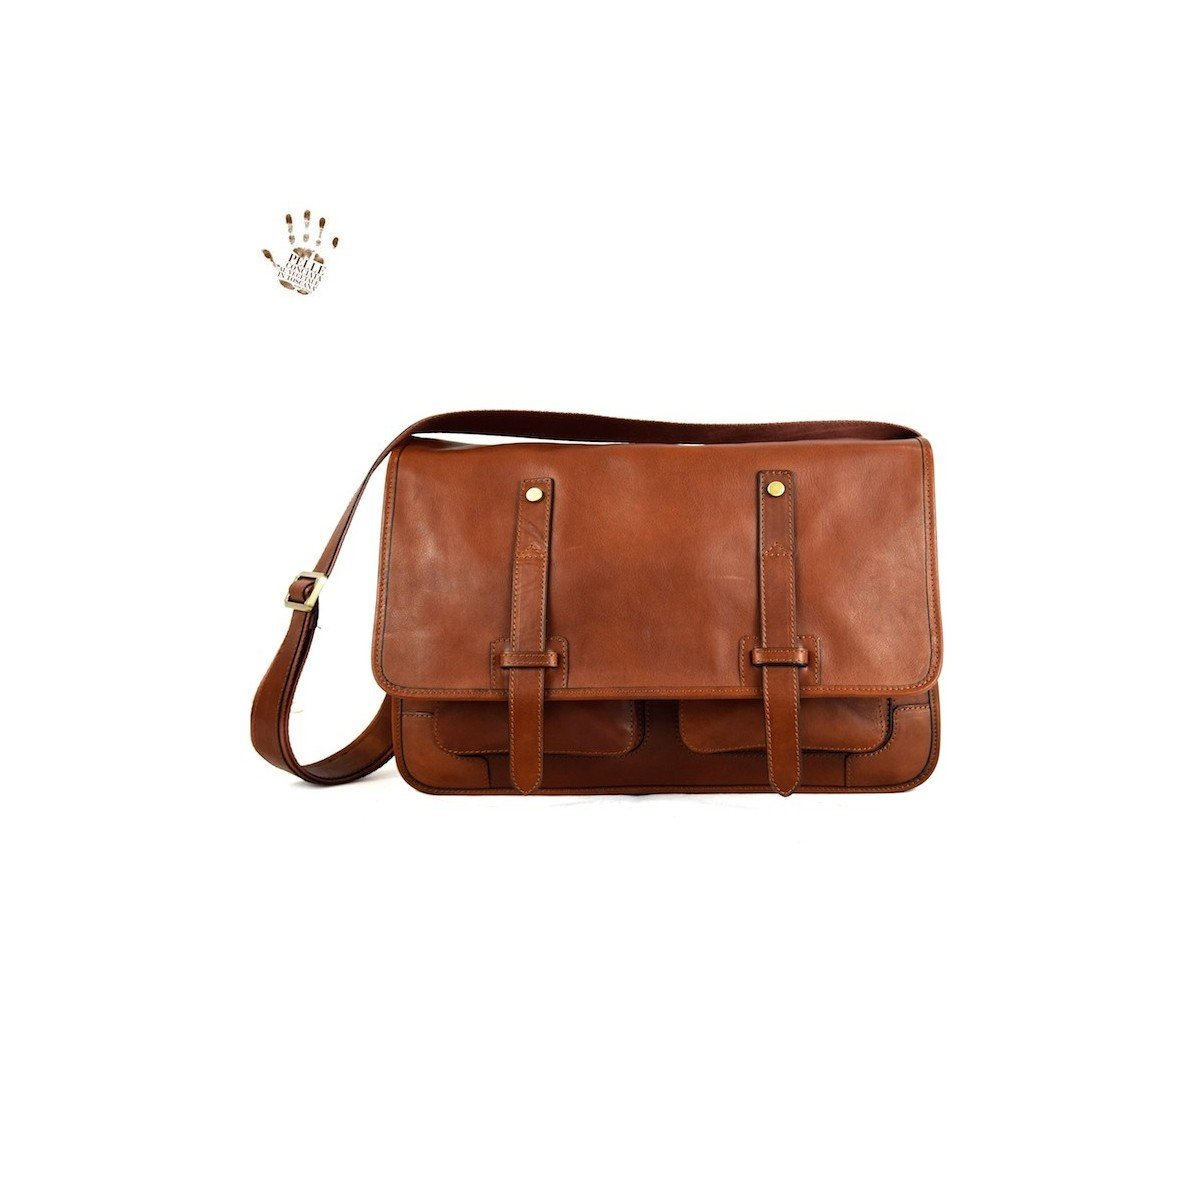 Made In Italy Vegetable Tanned Leather Messenger Bags With Front Pockets Color Brown - Prestige Line   B01LYVFJ88